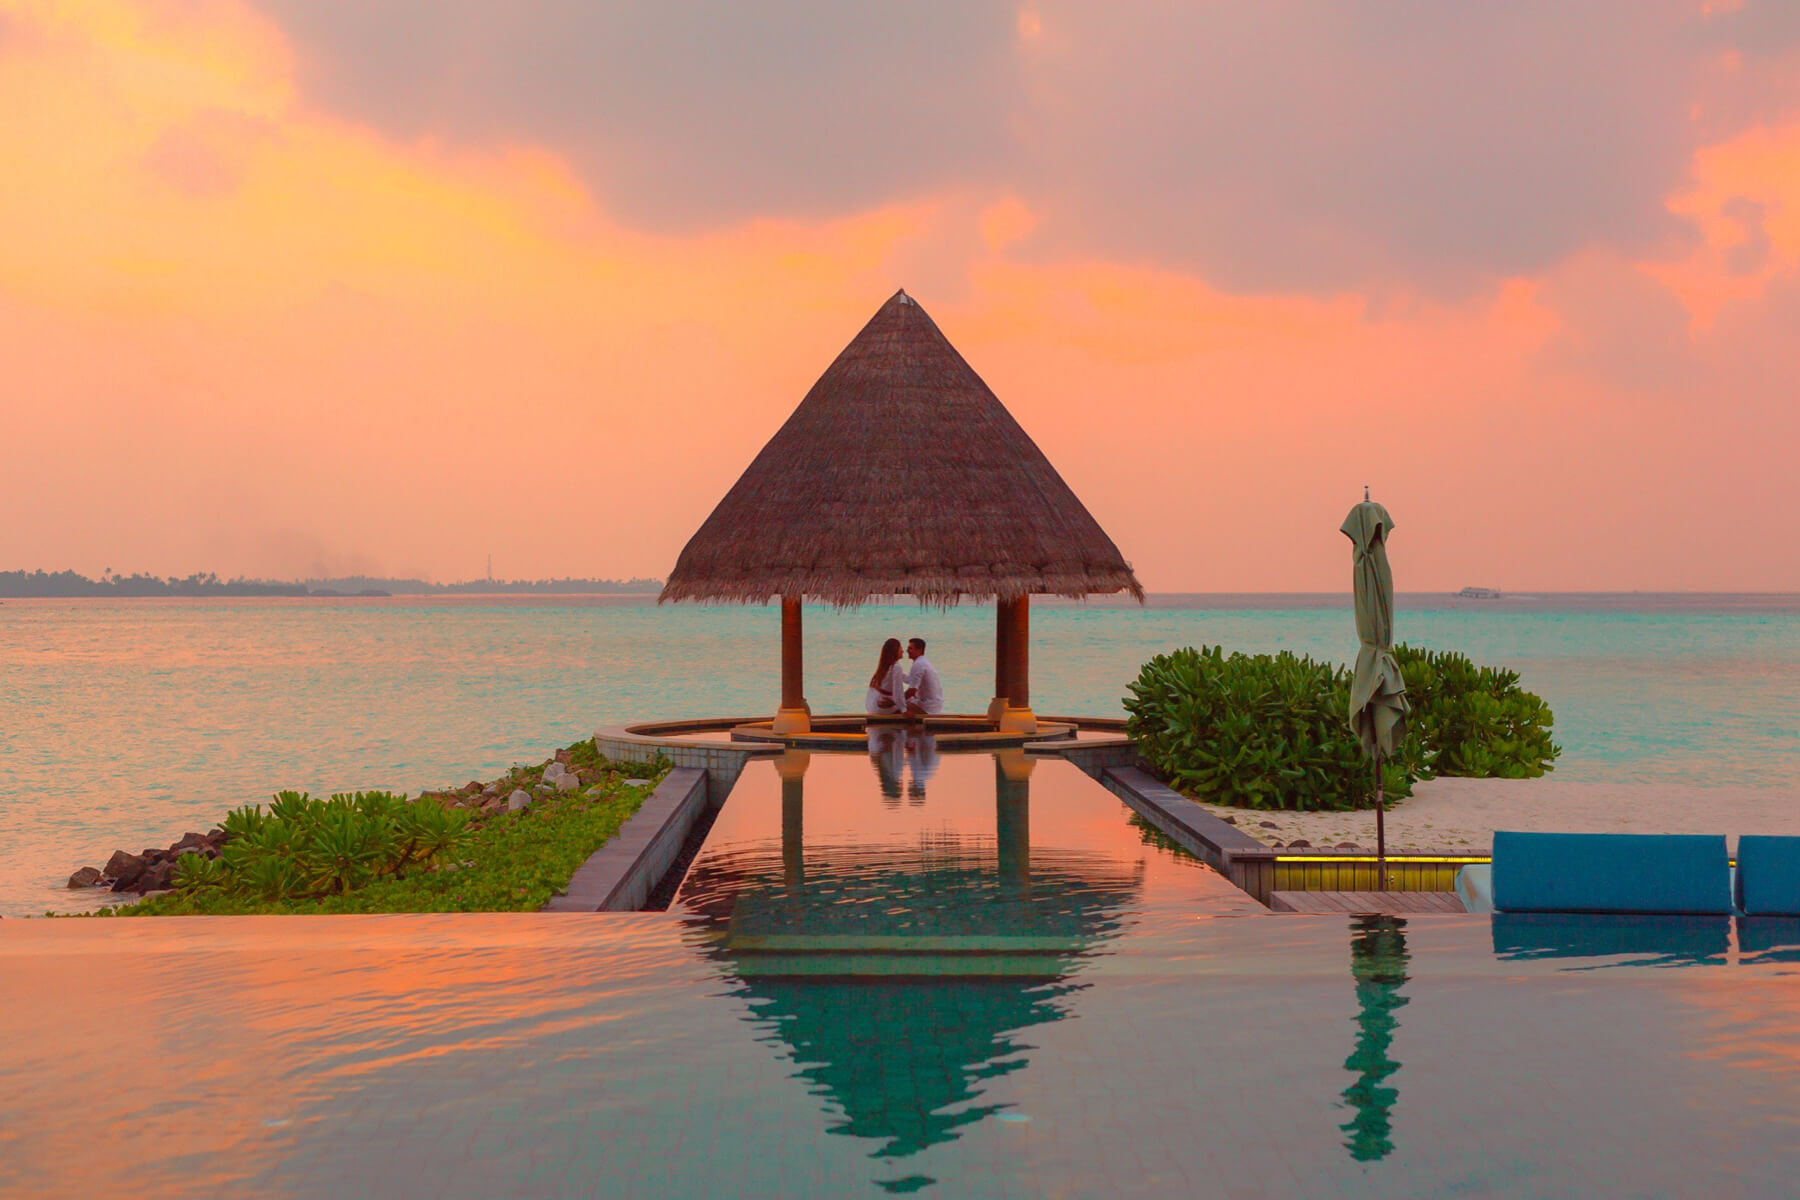 A couple under a tropical pagoda at sunset in front of a reflecting pool